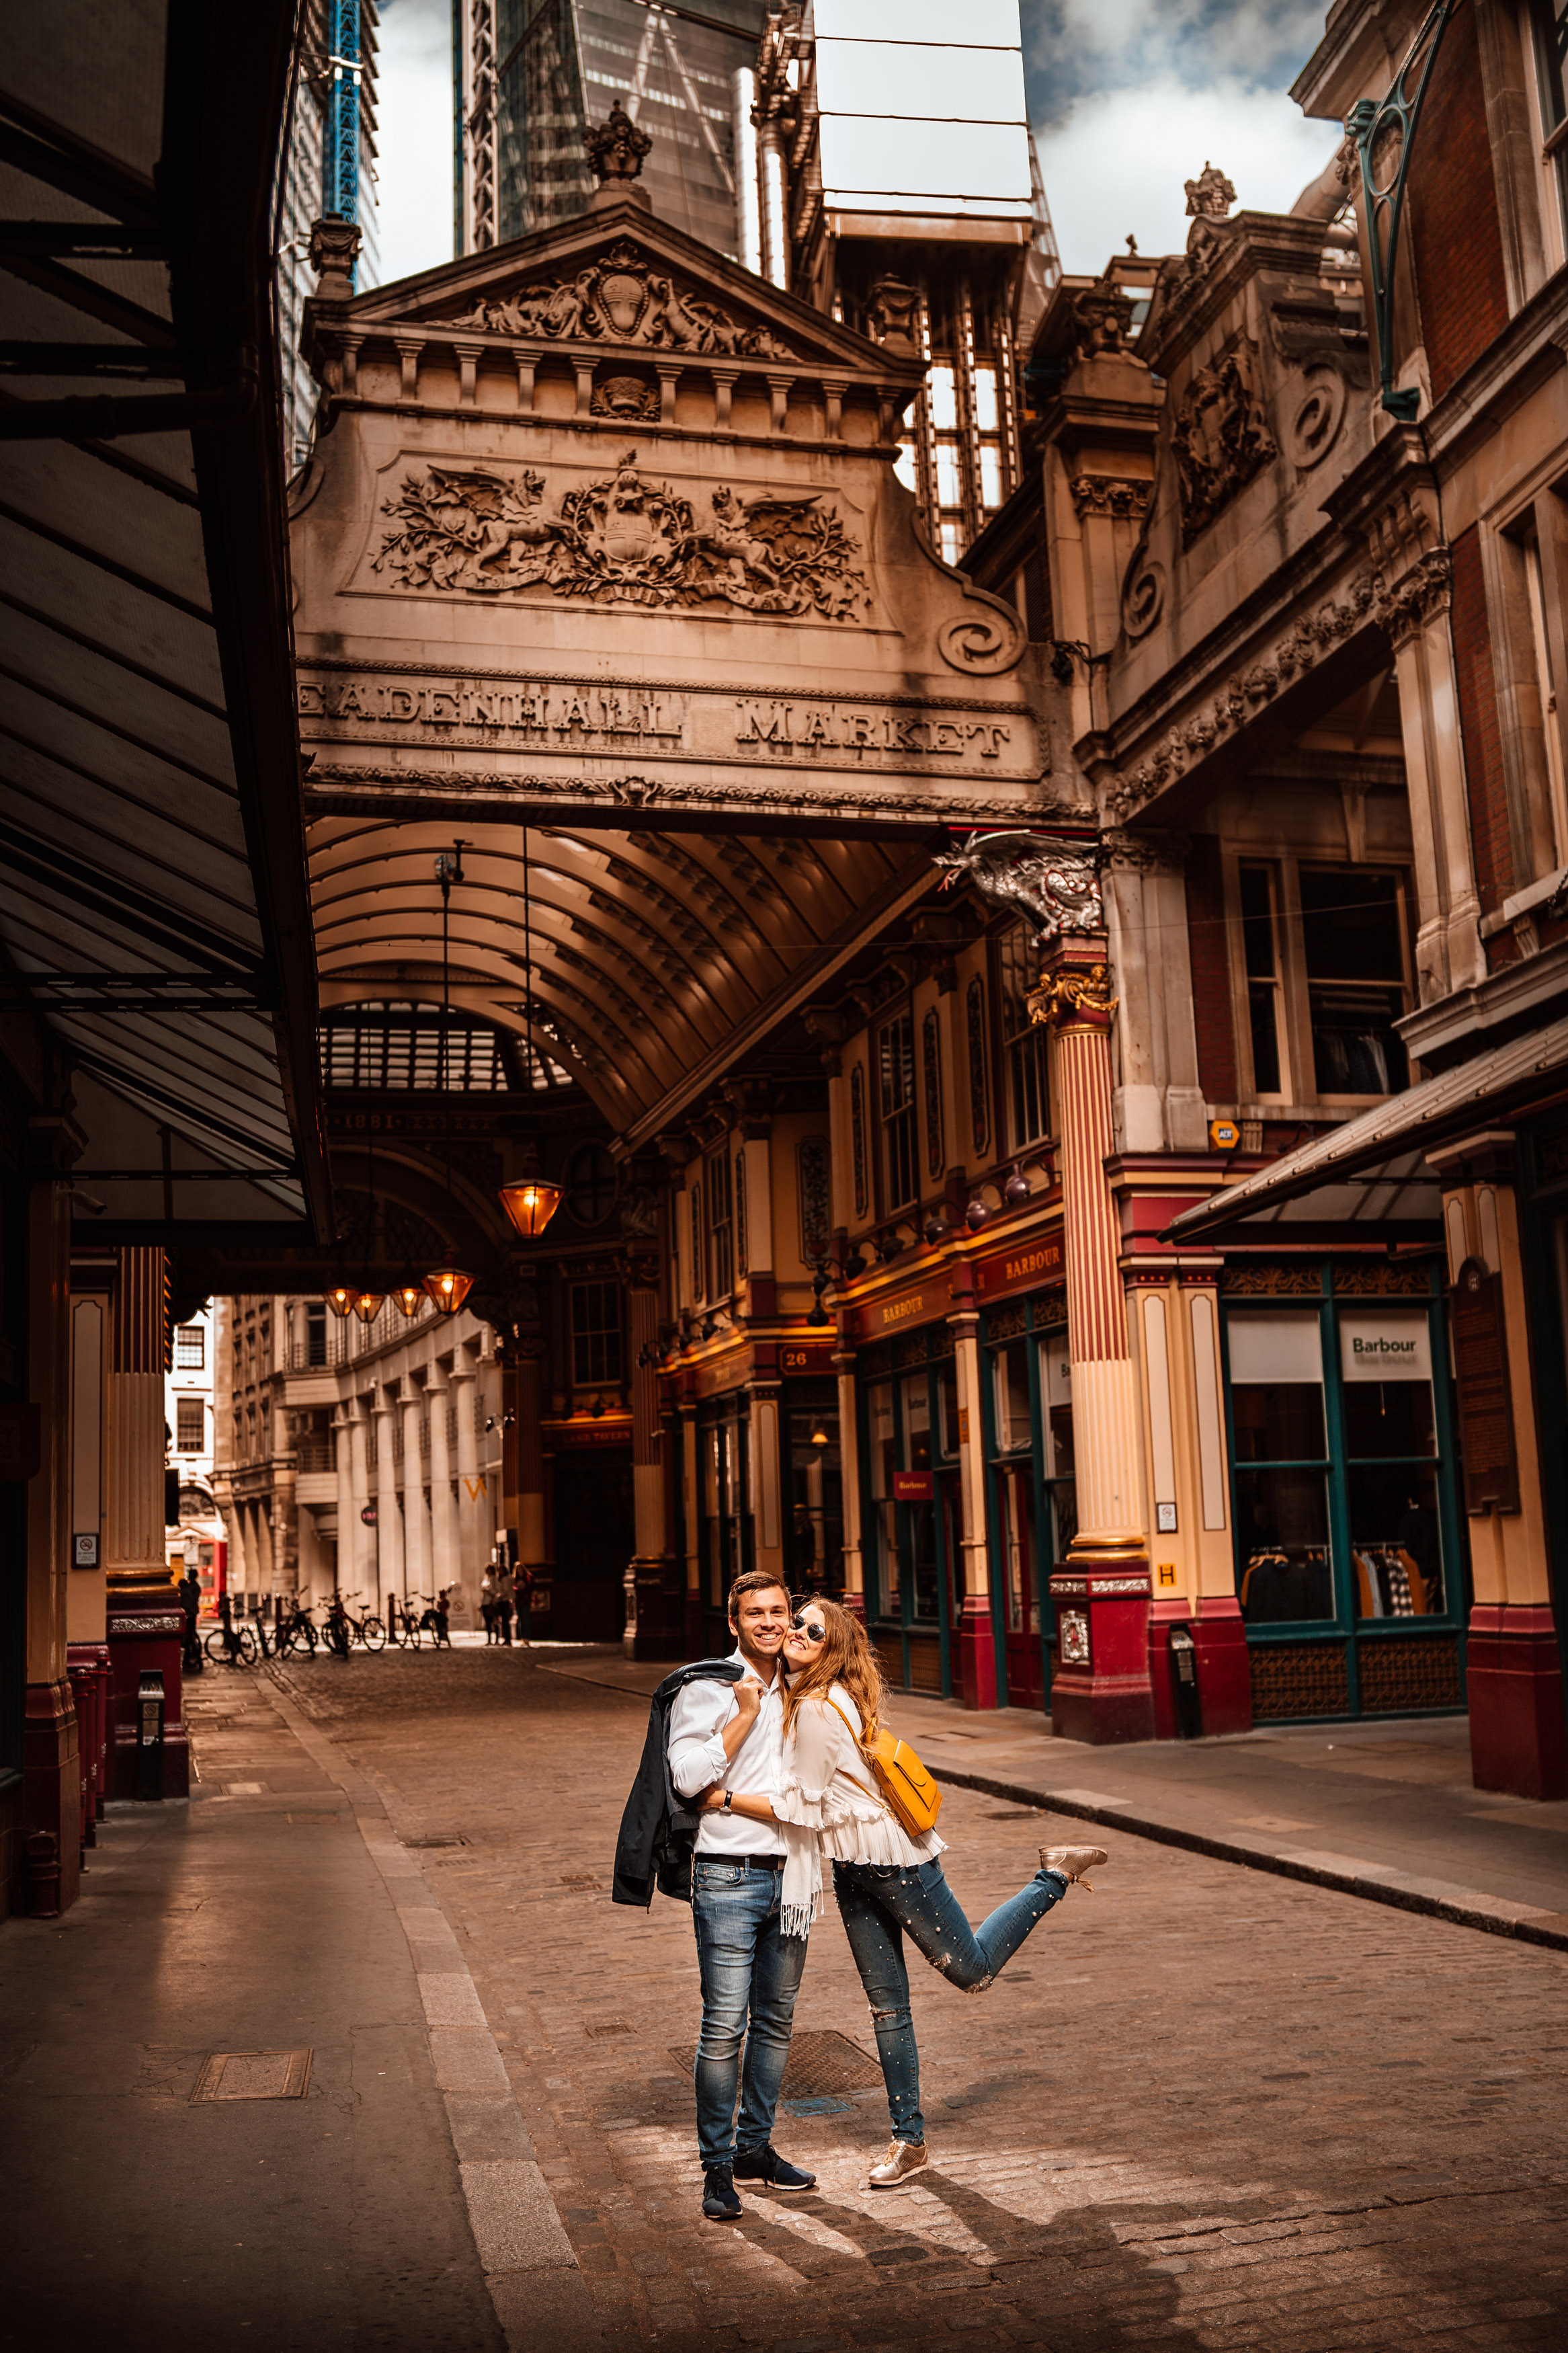 Destination_Wedding_London_Engagement_Session_Photographer-153.jpg